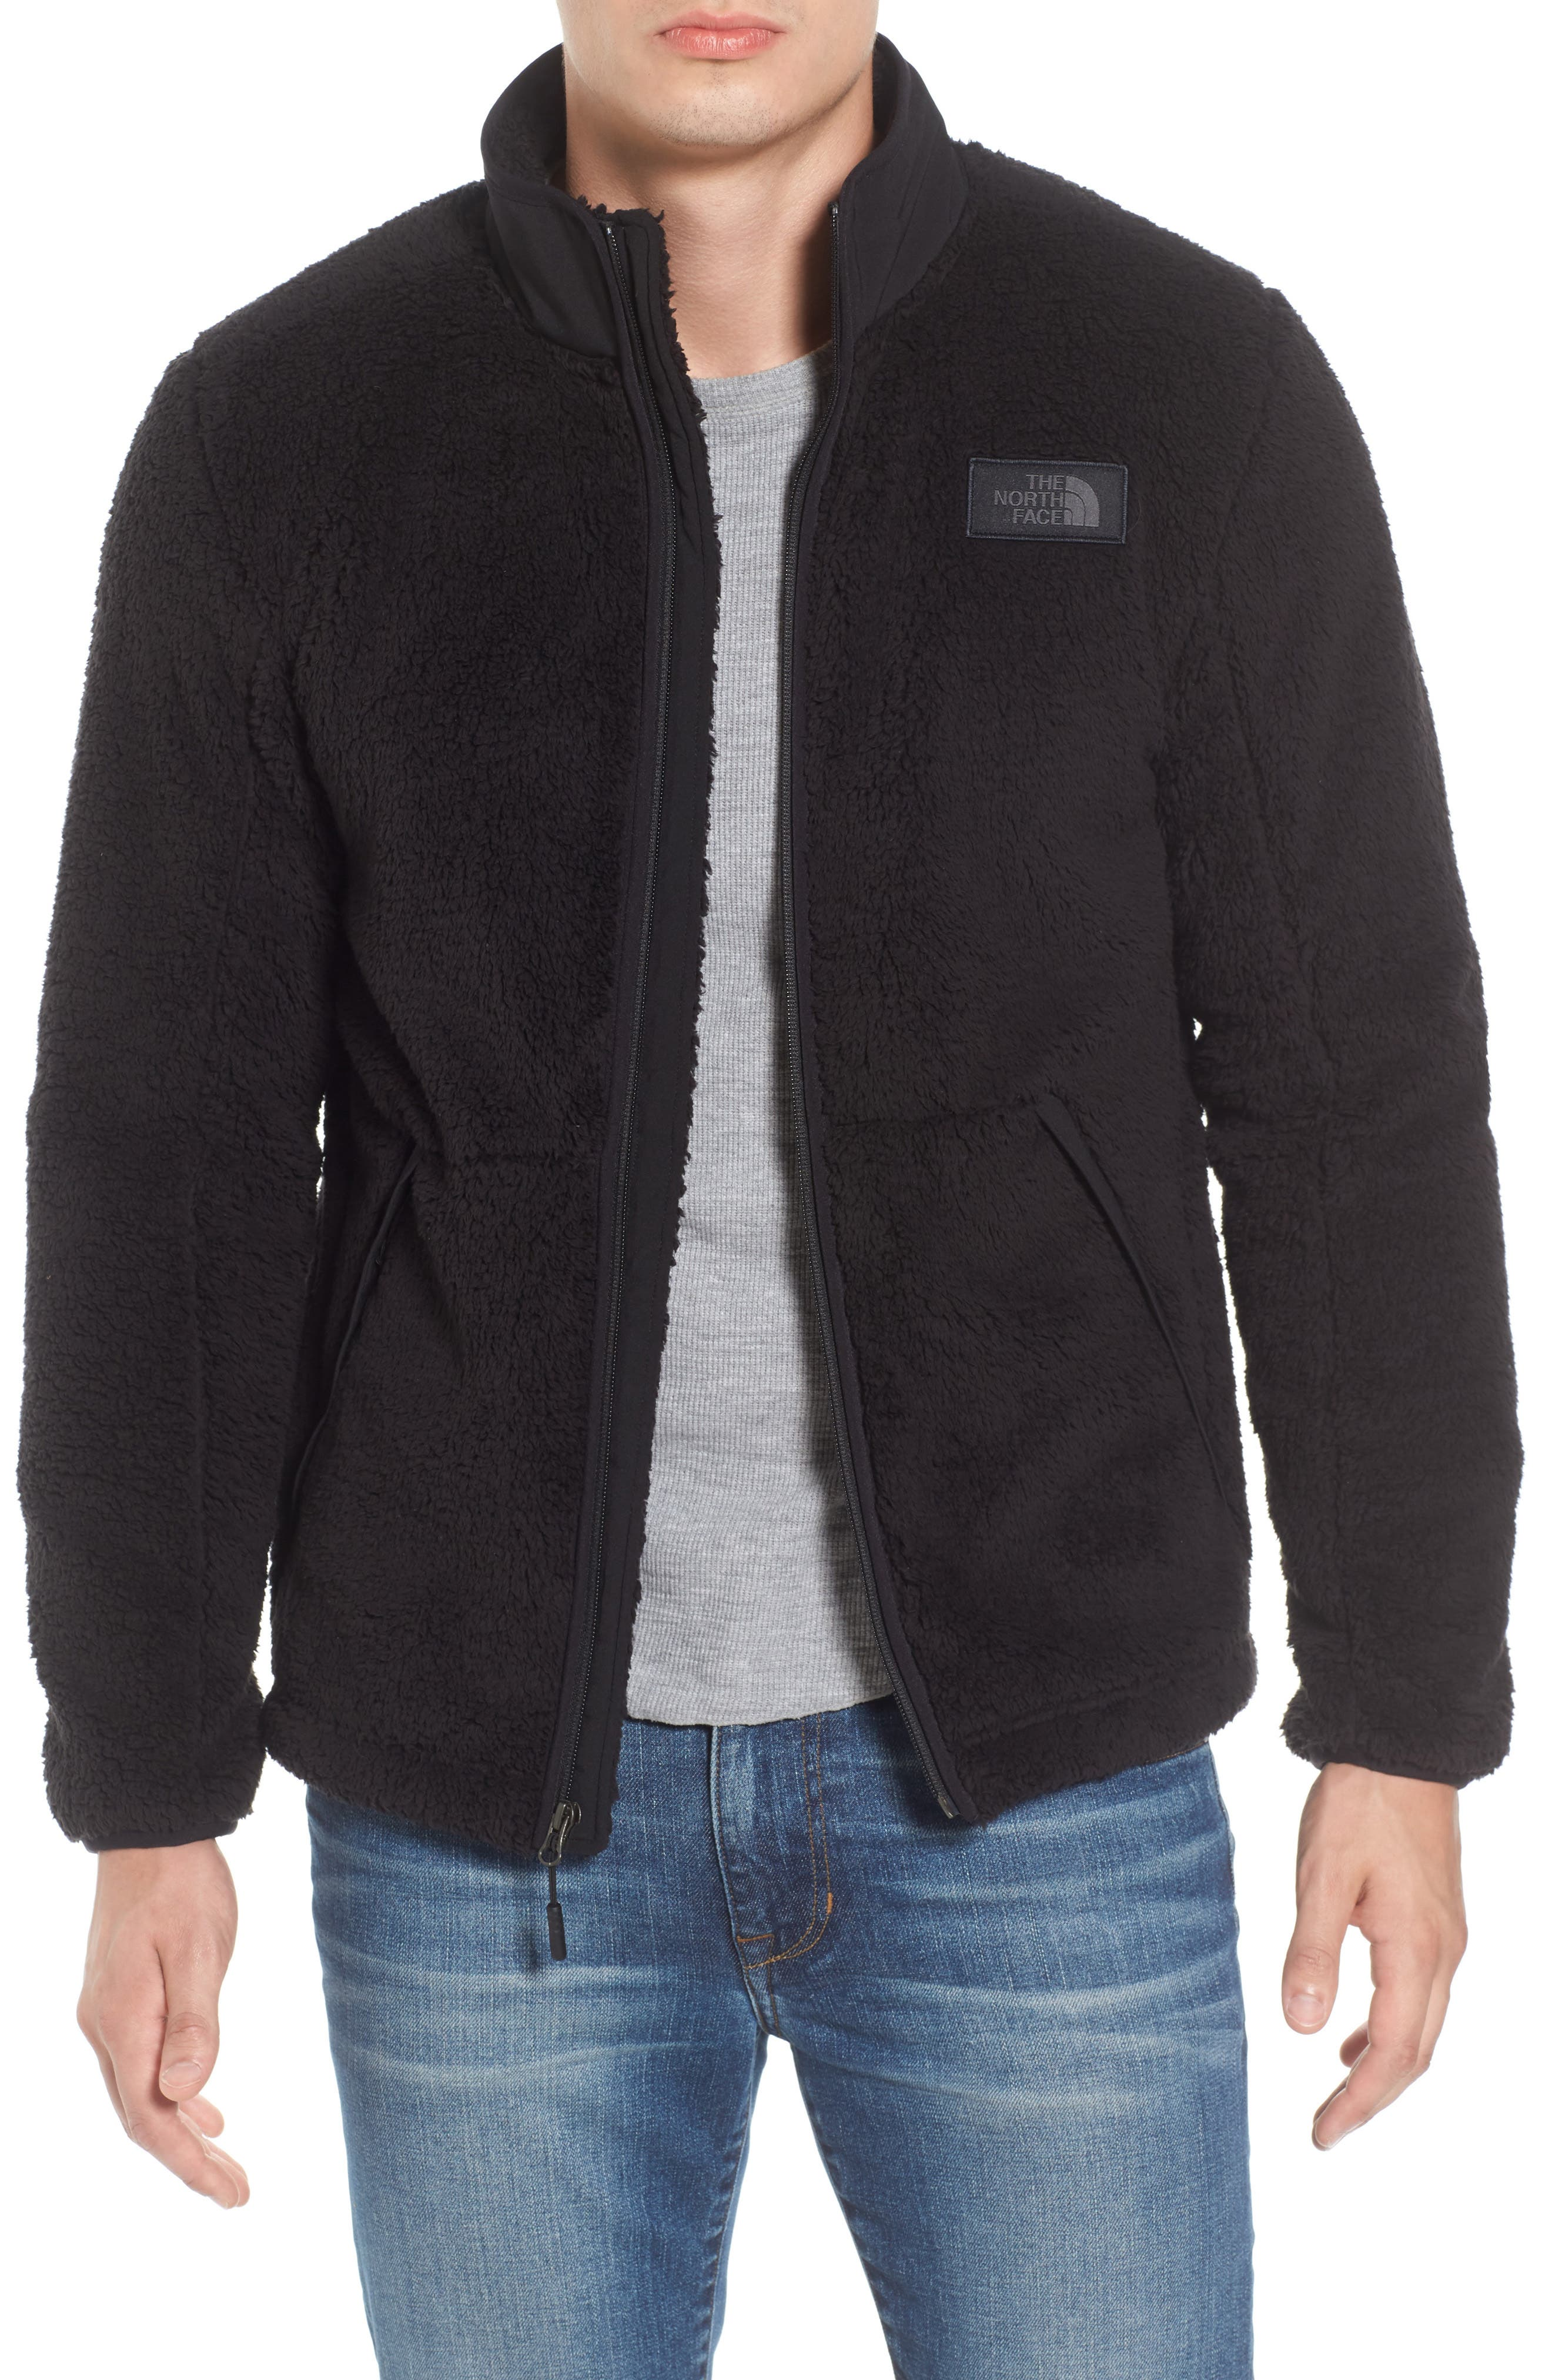 Alternate Image 1 Selected - The North Face Campshire Zip Fleece Jacket